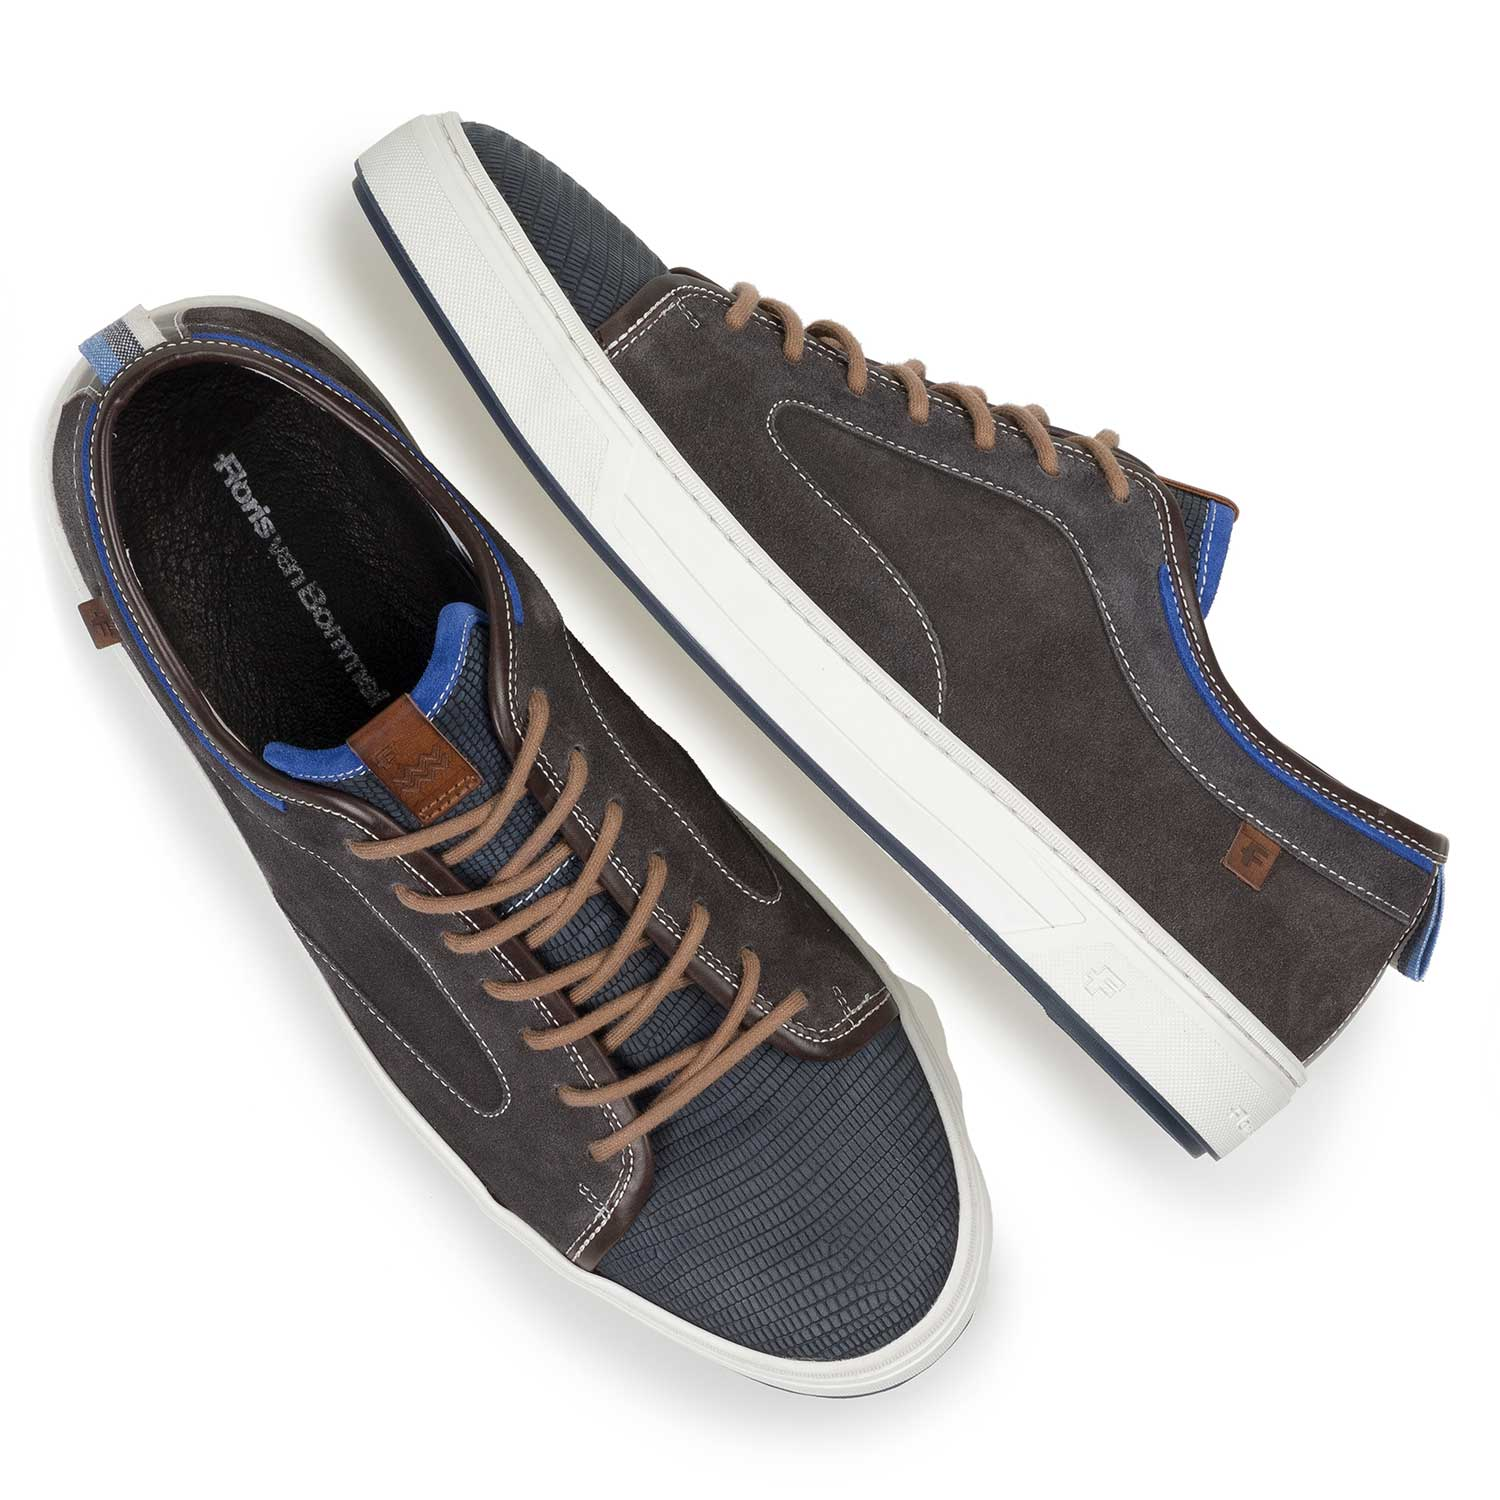 13466/08 - Dark grey & blue lizard print suede leather sneaker